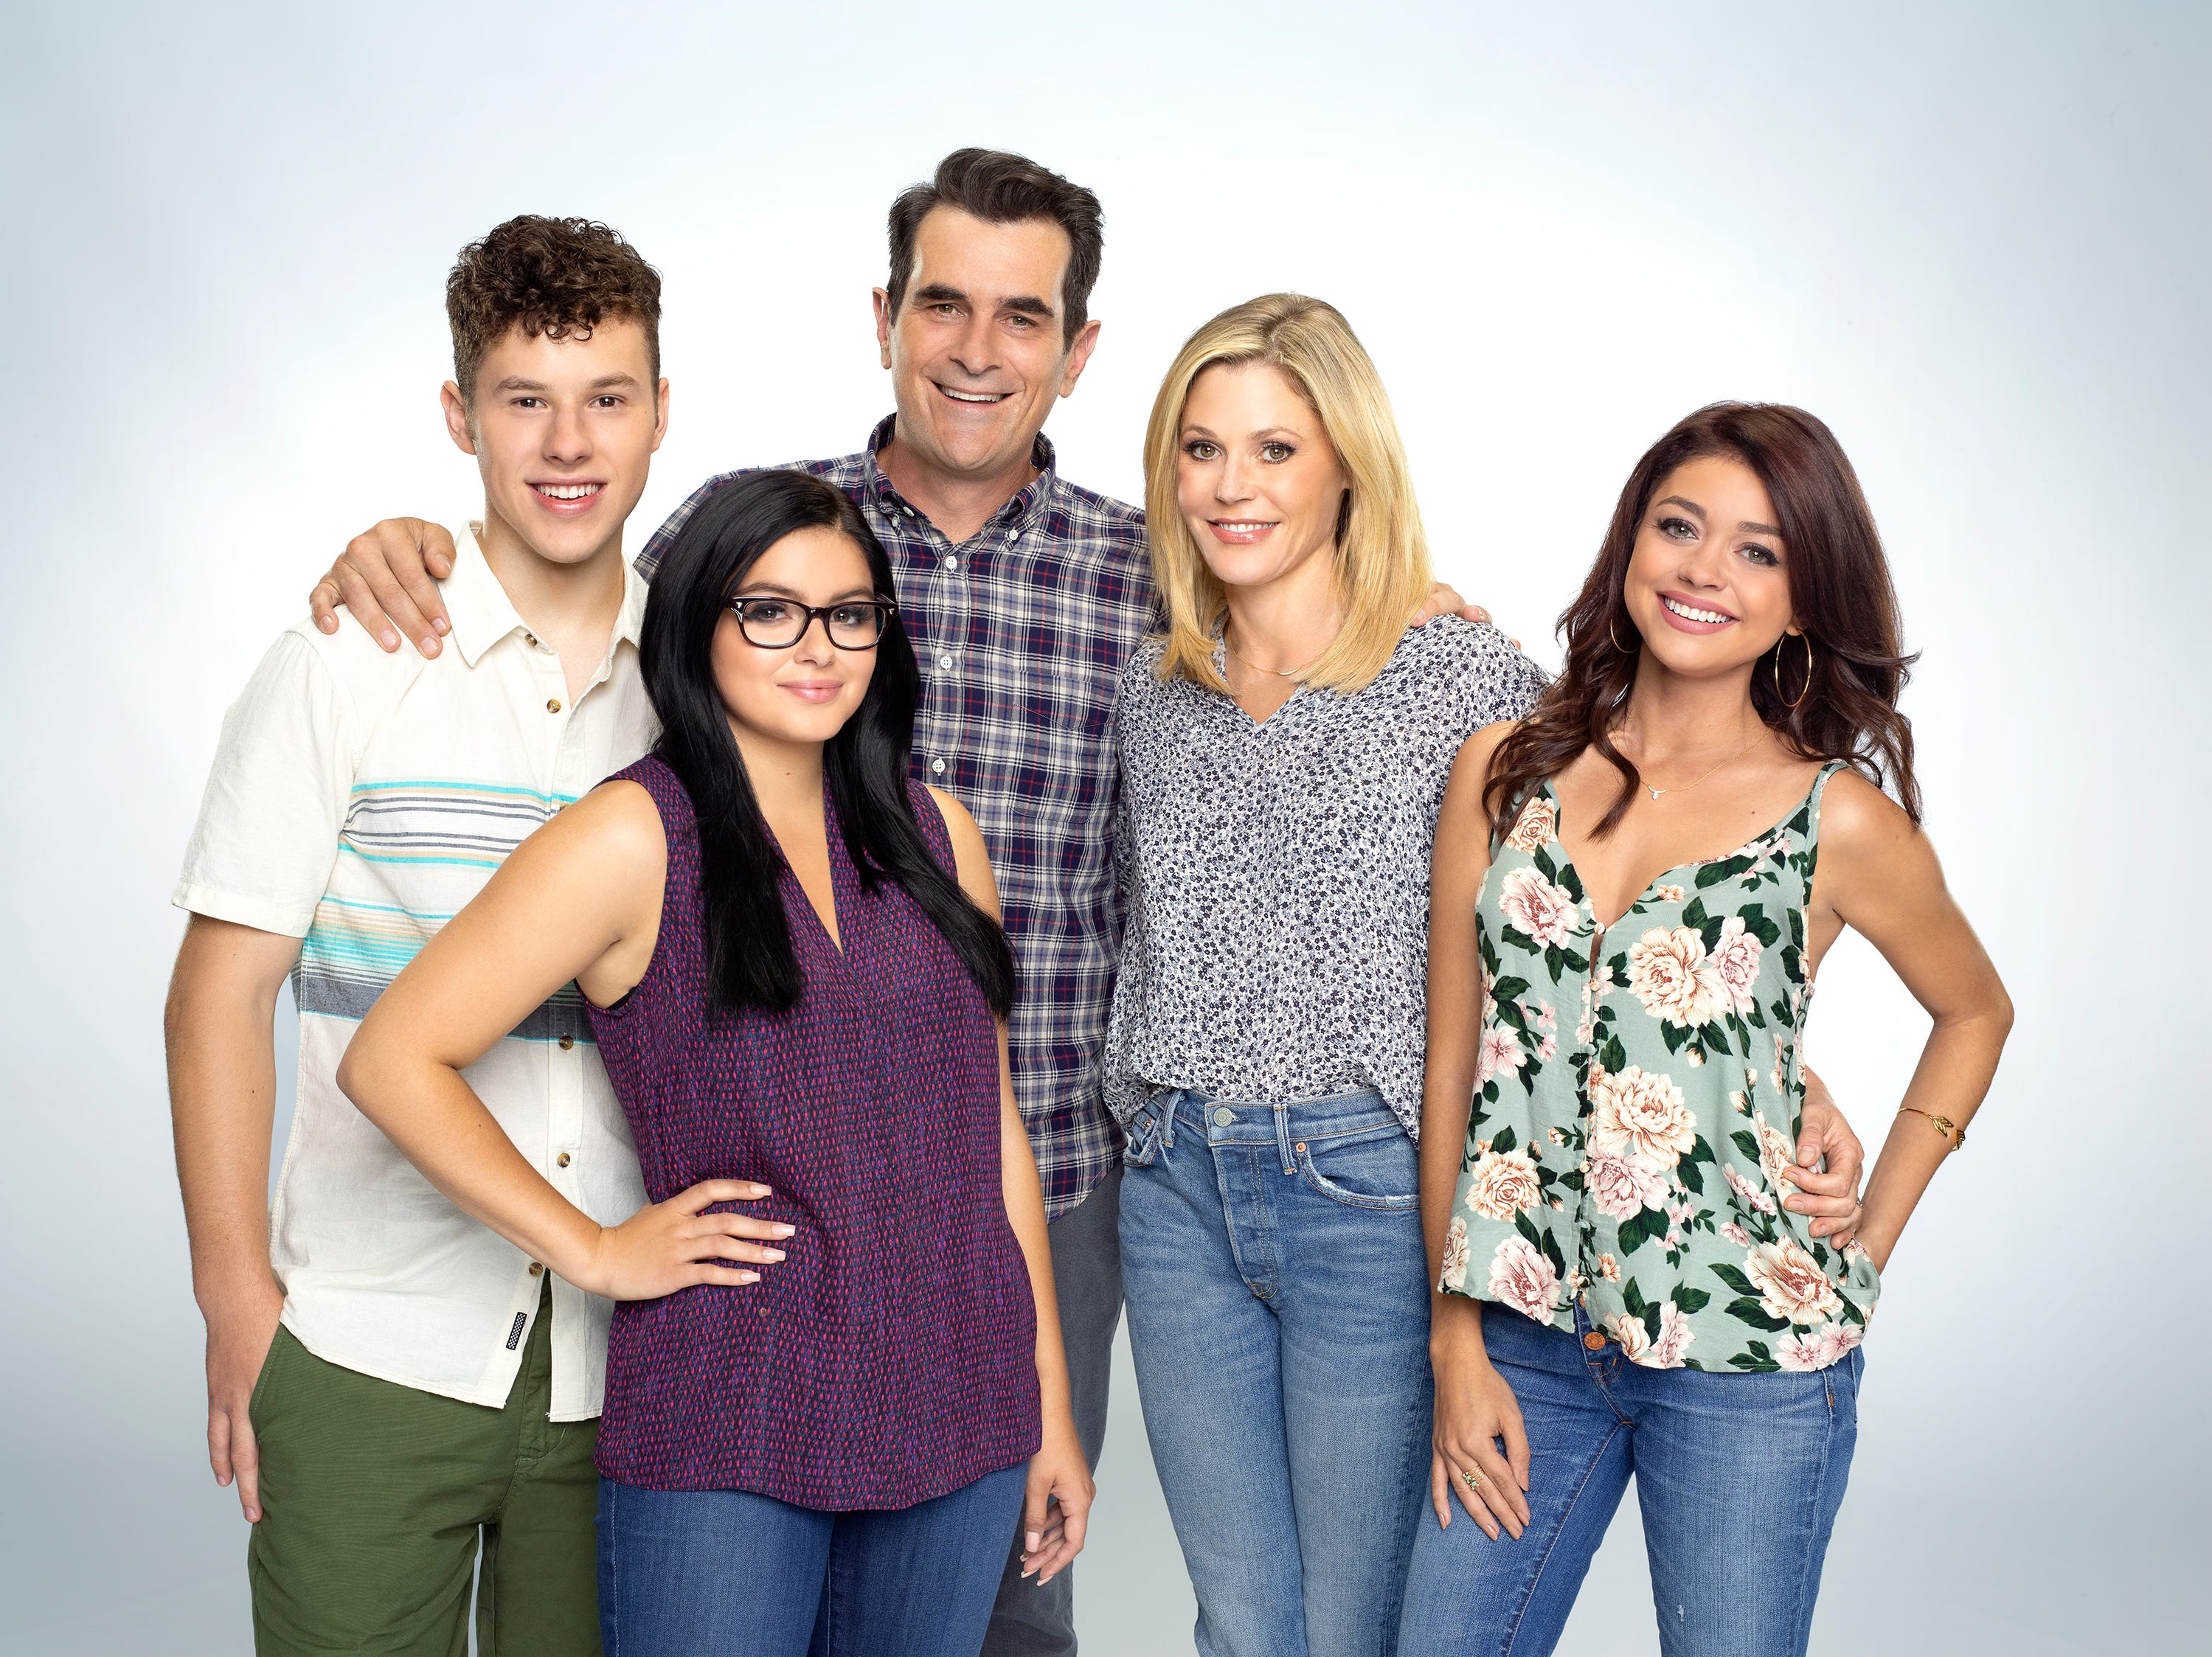 Nolan Gould as Luke, Ariel Winter as Alex, Ty Burrell as Phil, Julie Bowen as Claire and Sarah Hyland as Haley at the start of the 10th season of the show.